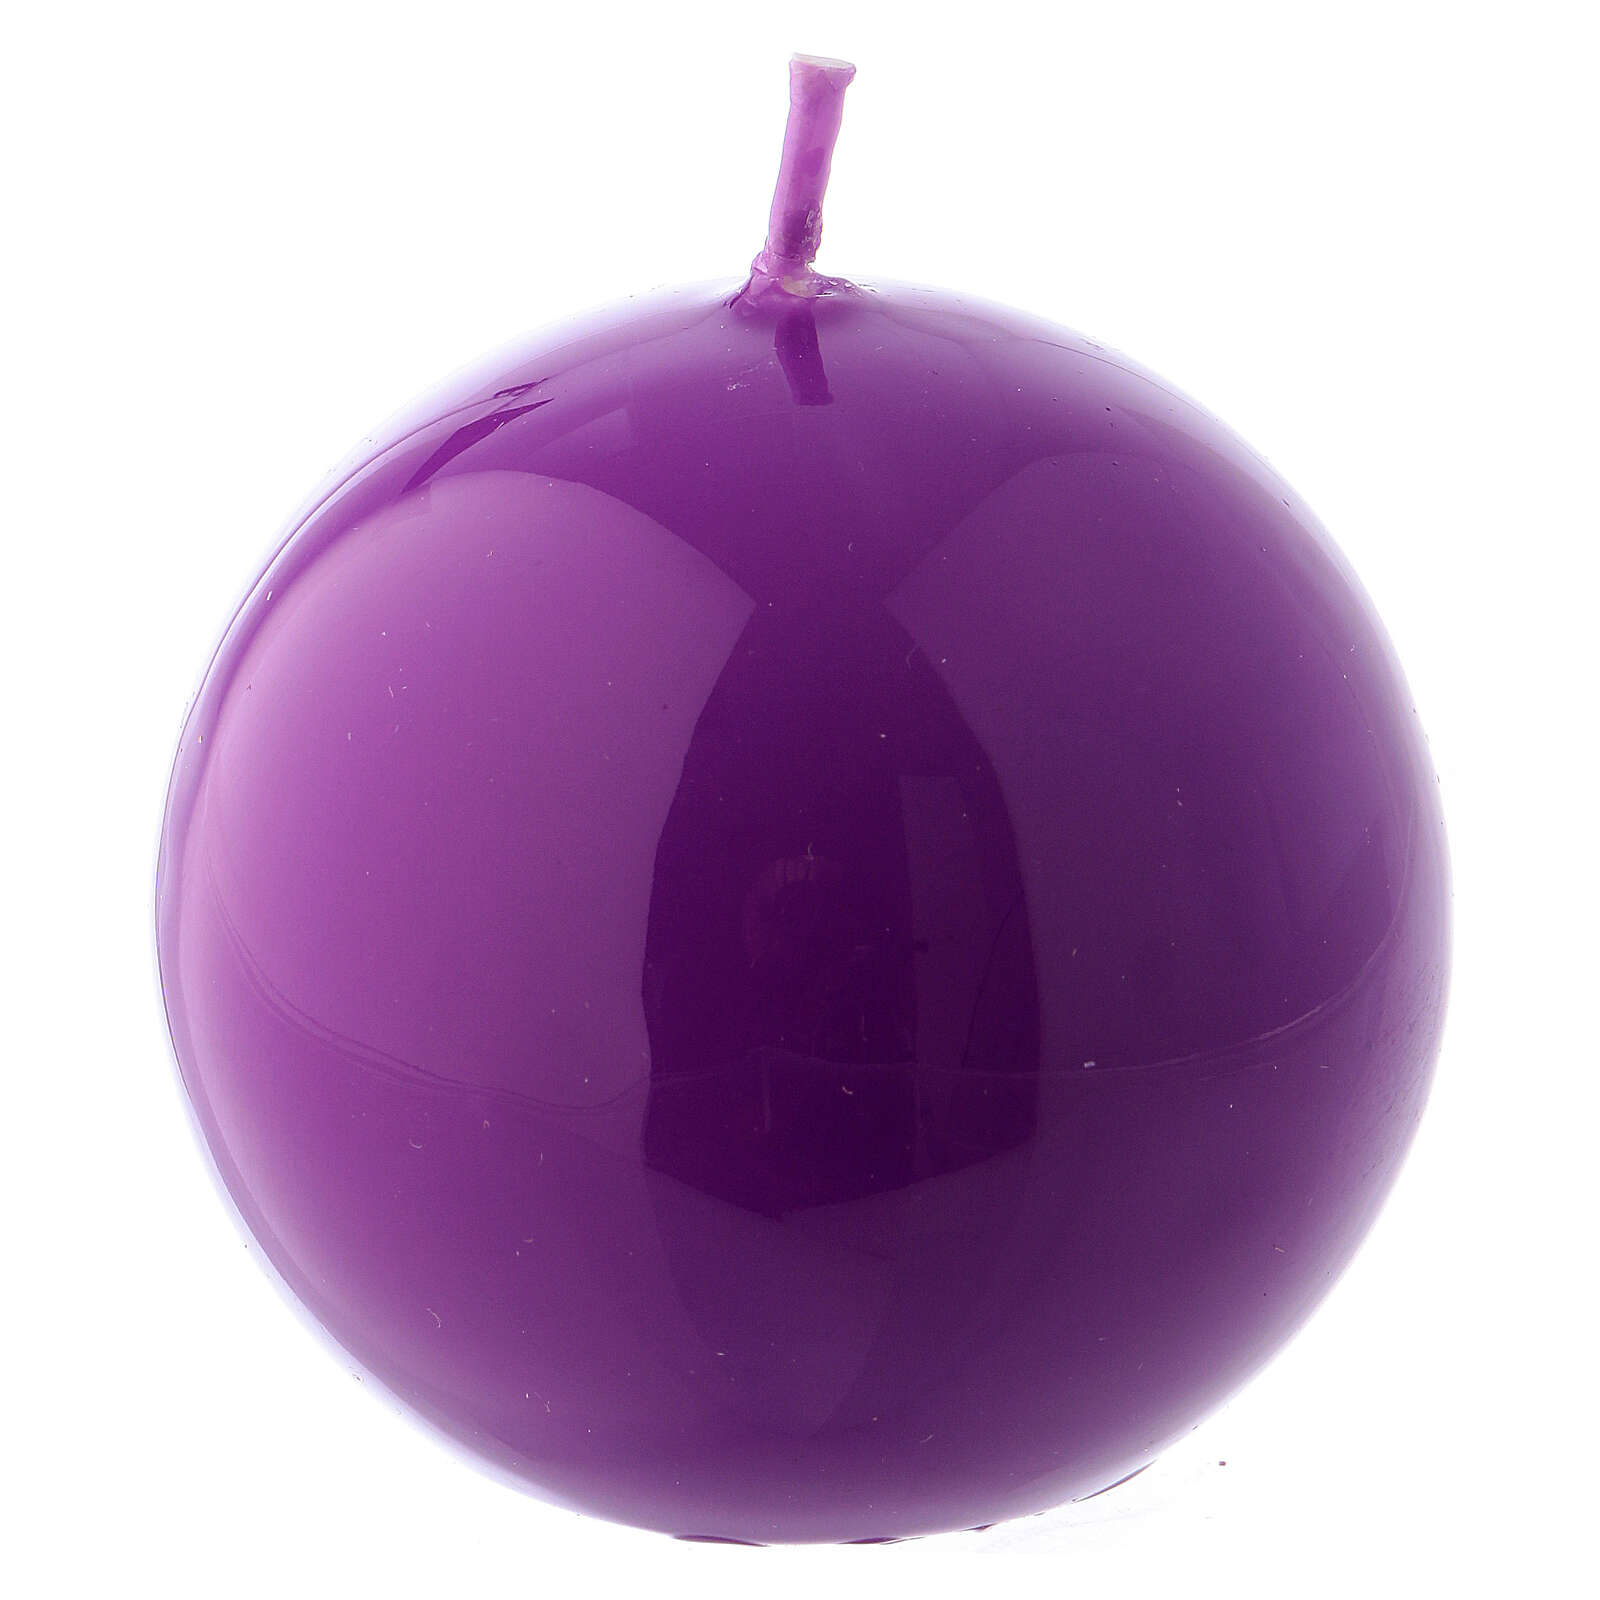 Shiny Sphere Candle Ceralacca, d. 6 cm purple 3